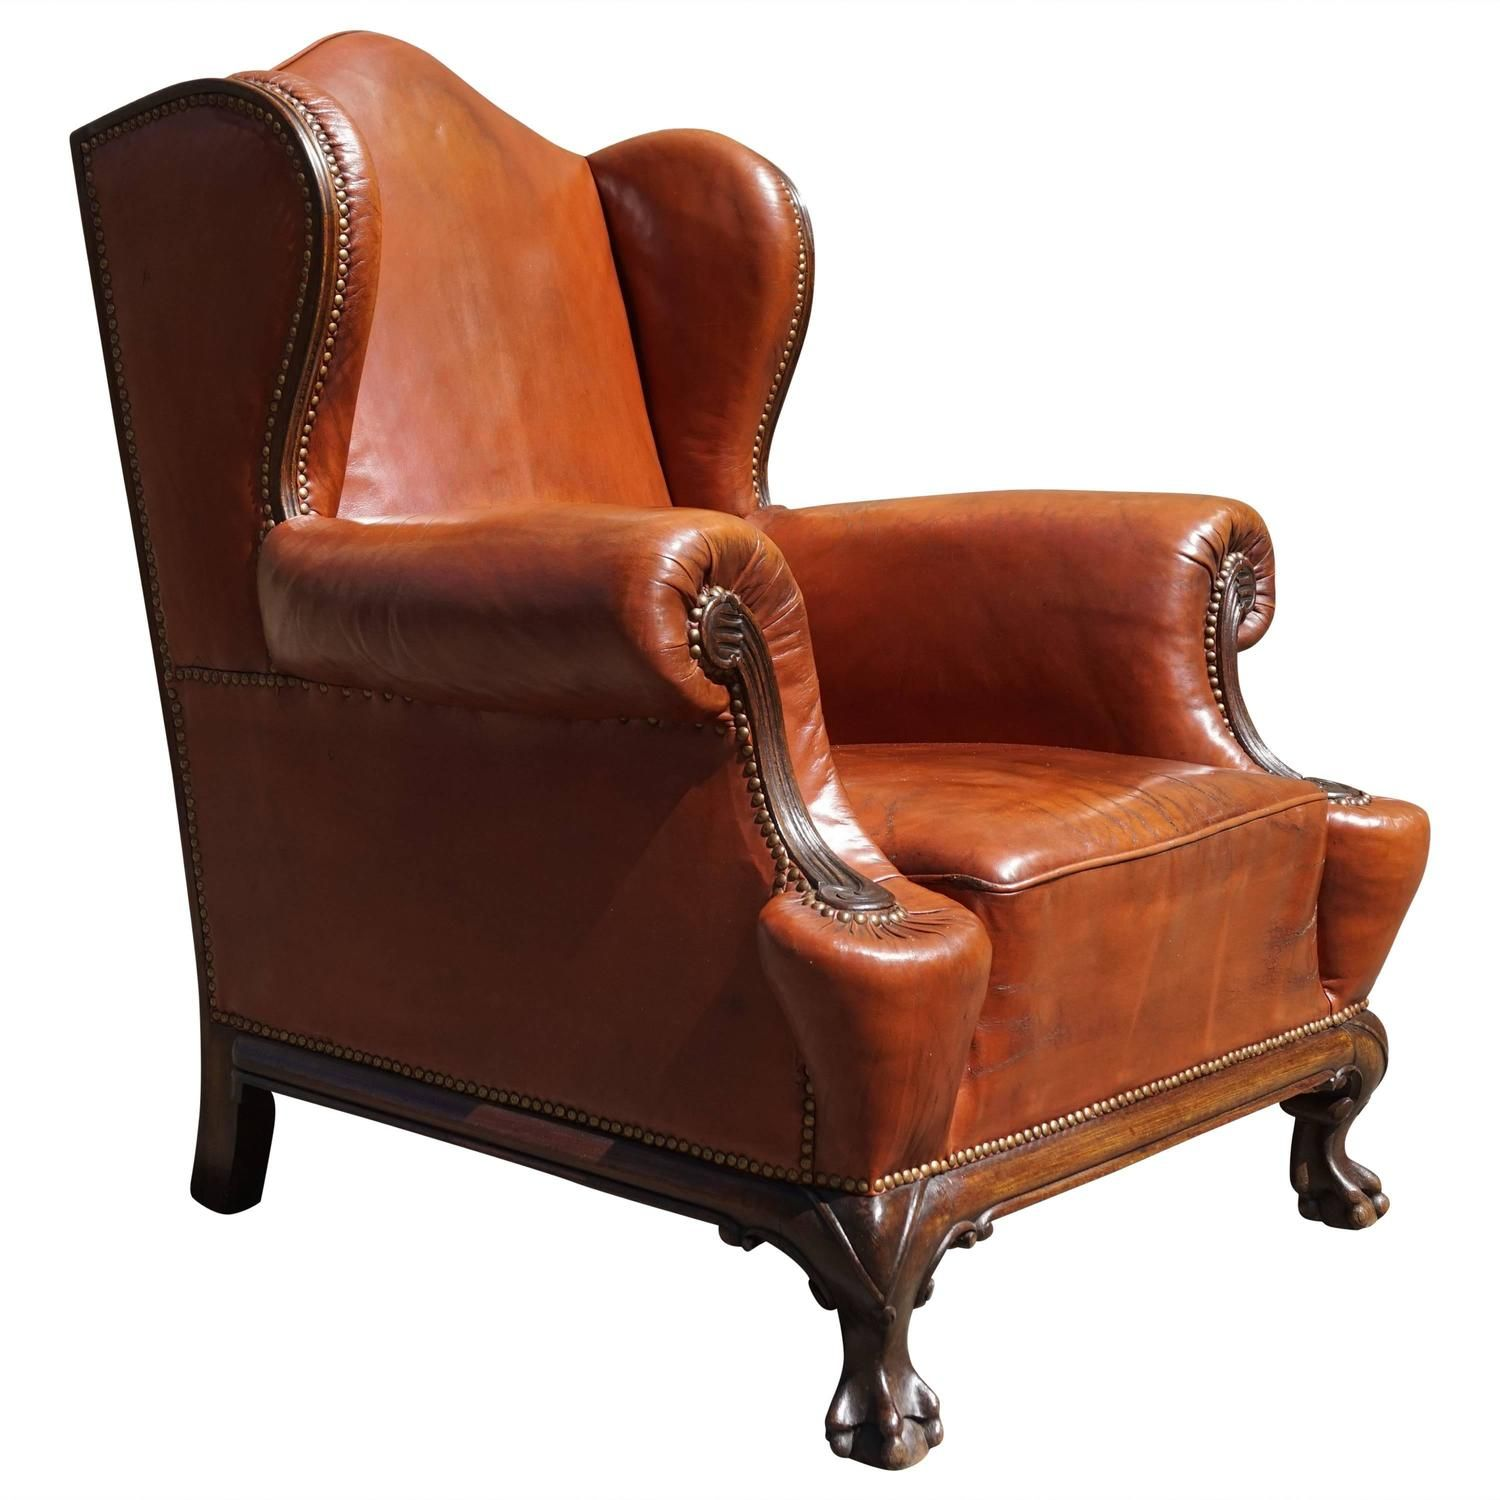 antique leather chippendale style wingback chair with hand carved